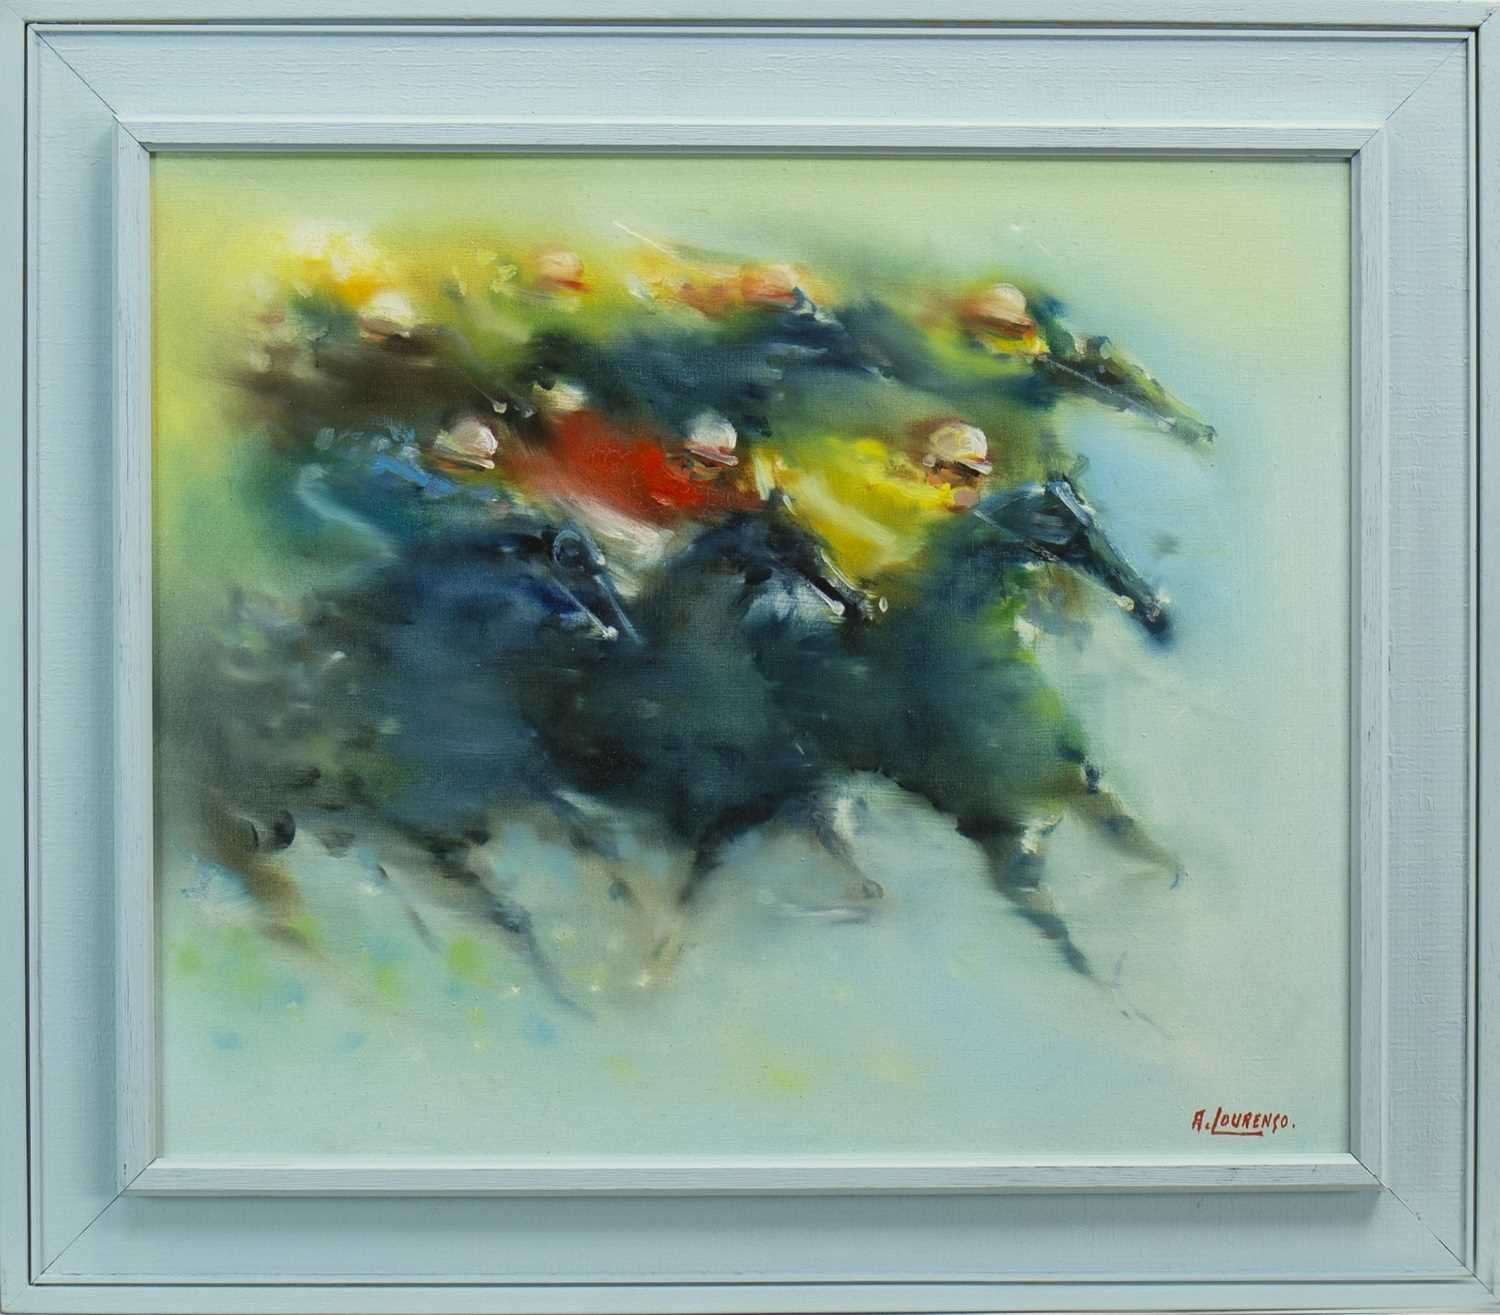 Lot 629-THE FINISH LINE, AN OIL BY ARMOND LOURENCO